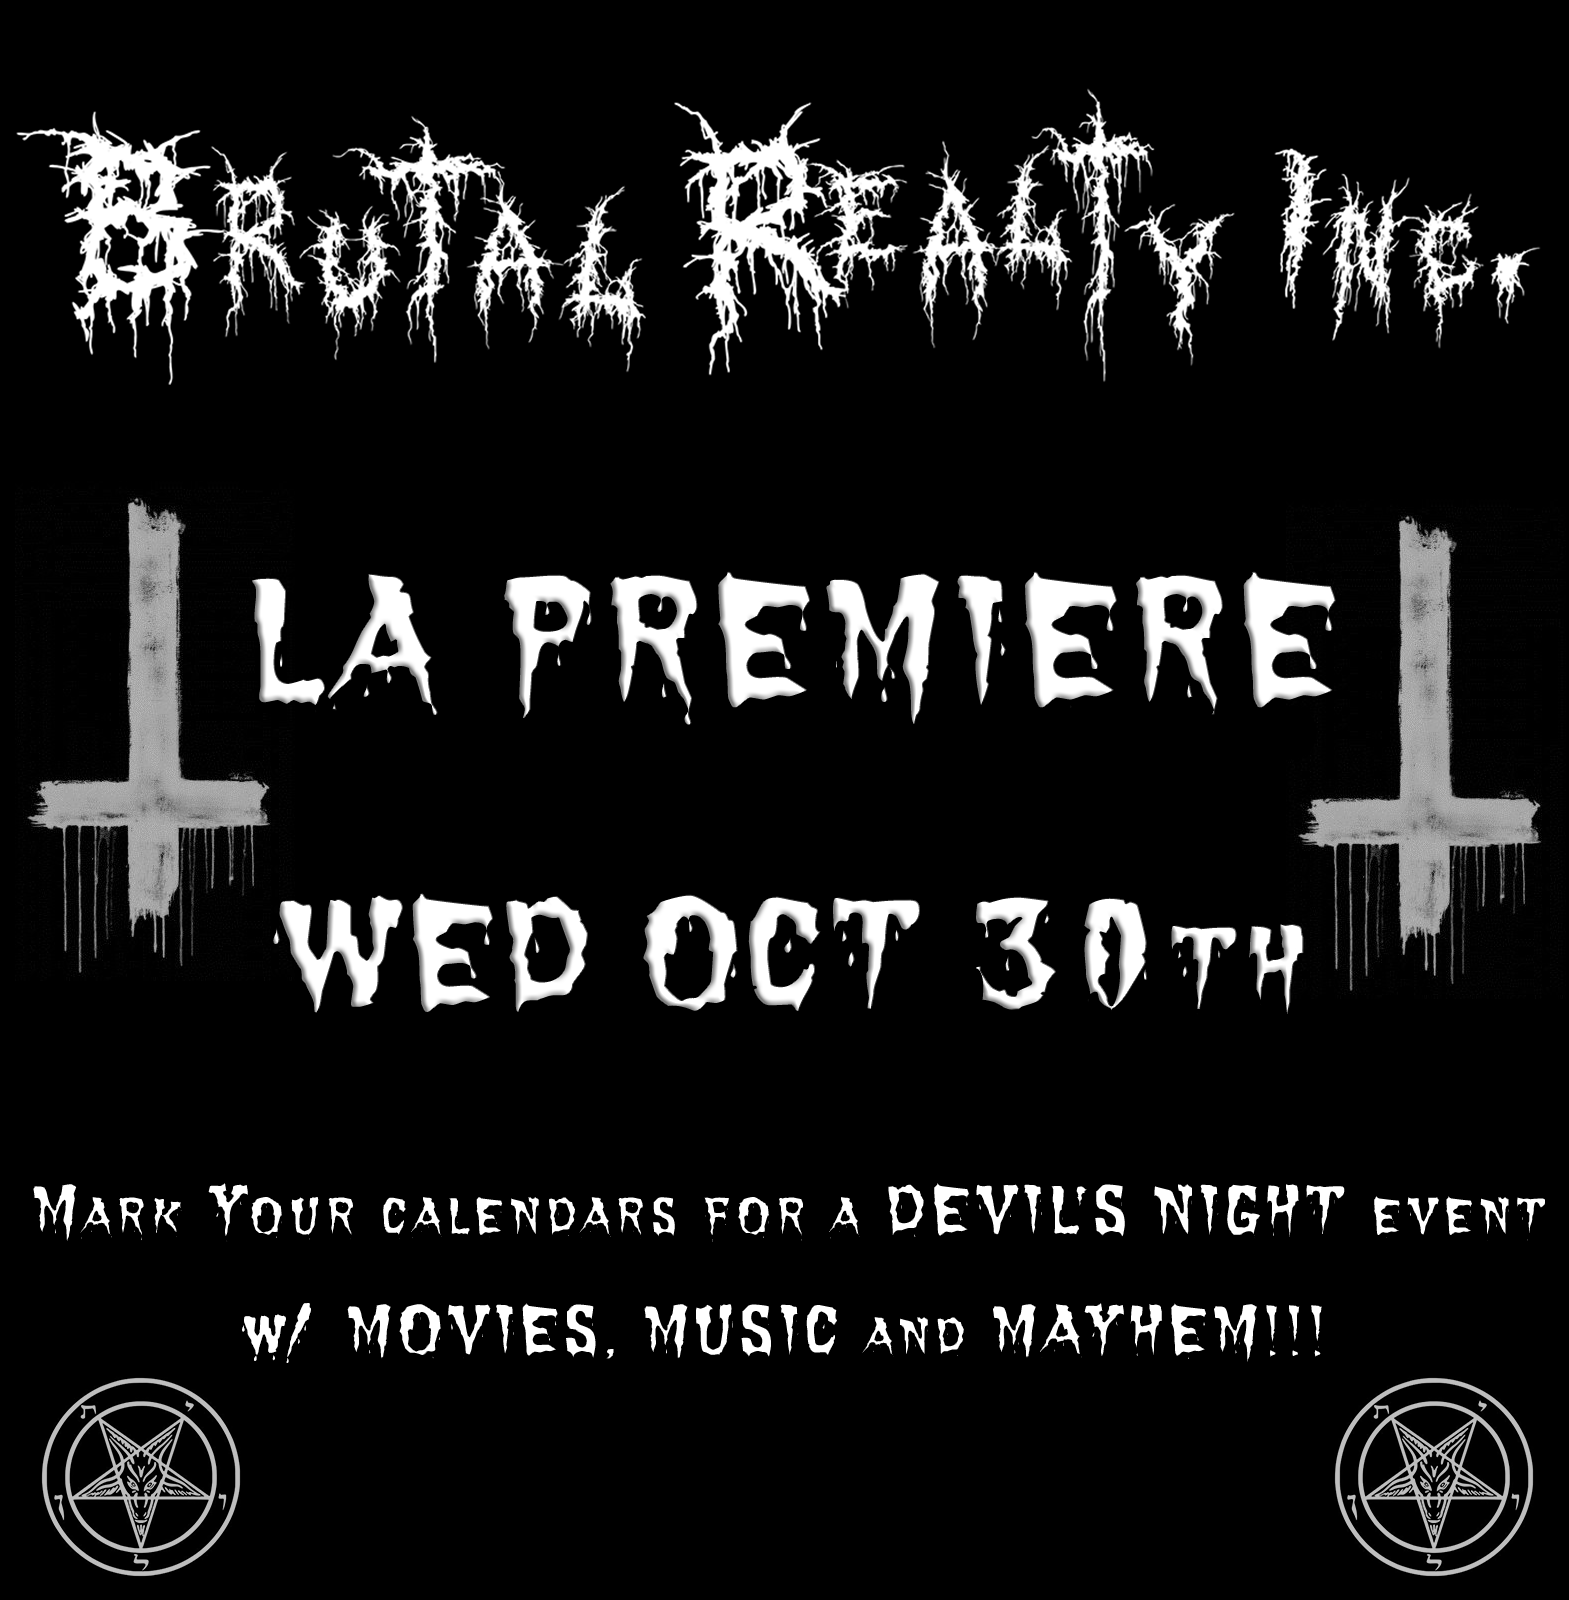 SAVE THE DATE!  I will be on screen & on stage 10/30/19 for A DEVIL'S NIGHT EXTRAVAGANZA IN LOS ANGELES! BRUTAL REALTY PREMIERE+Movies+Music+Mayhem Details & Ticket info soon!